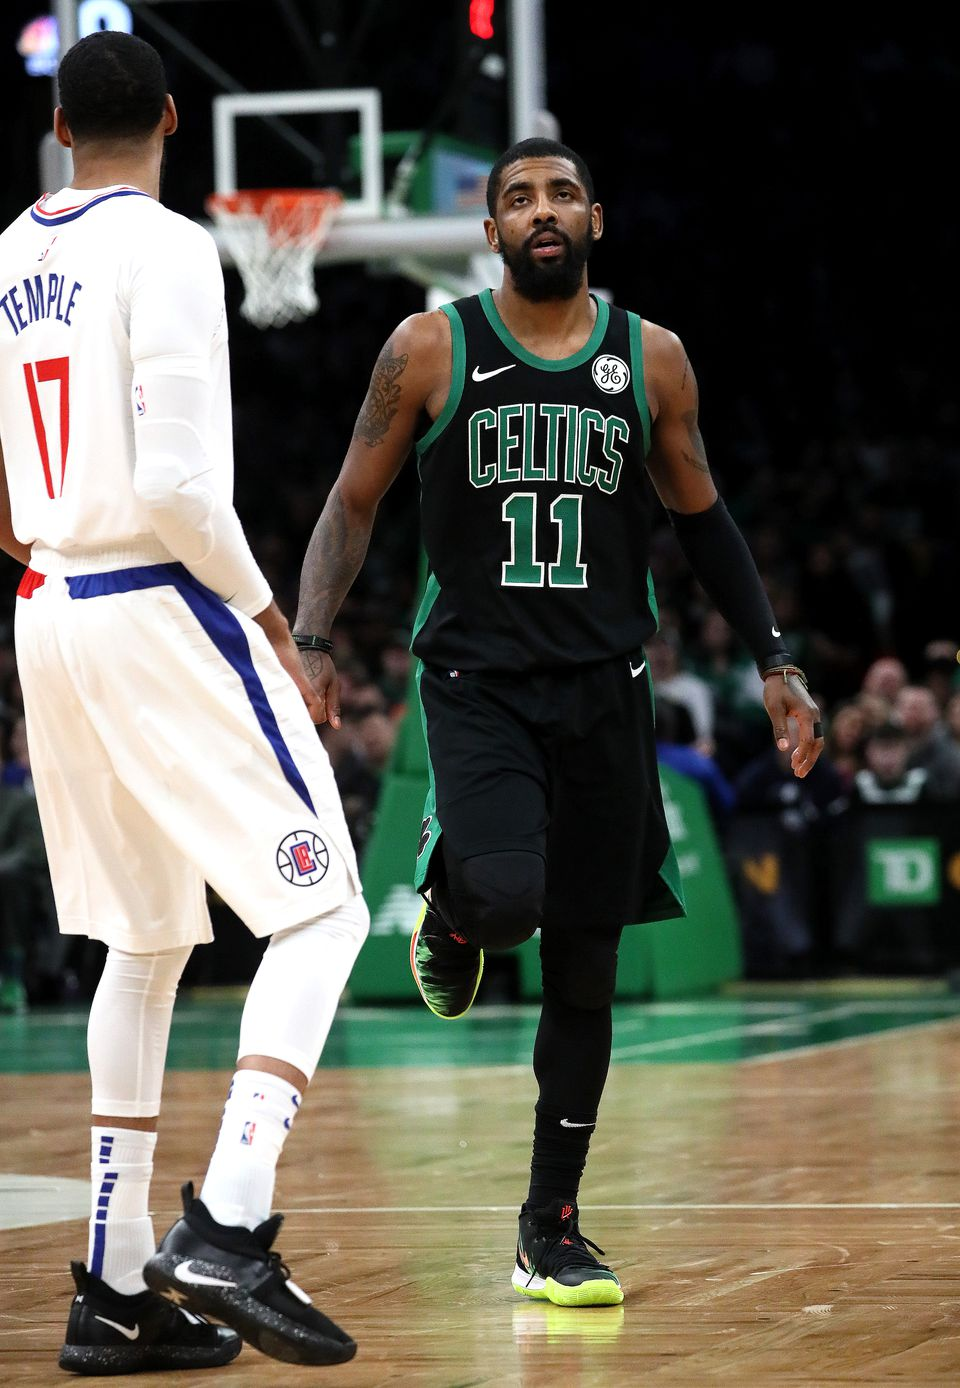 Kyrie Irving flexes his leg after he appeared to sprain his right knee in the second quarter. Irving left the game and did not return.